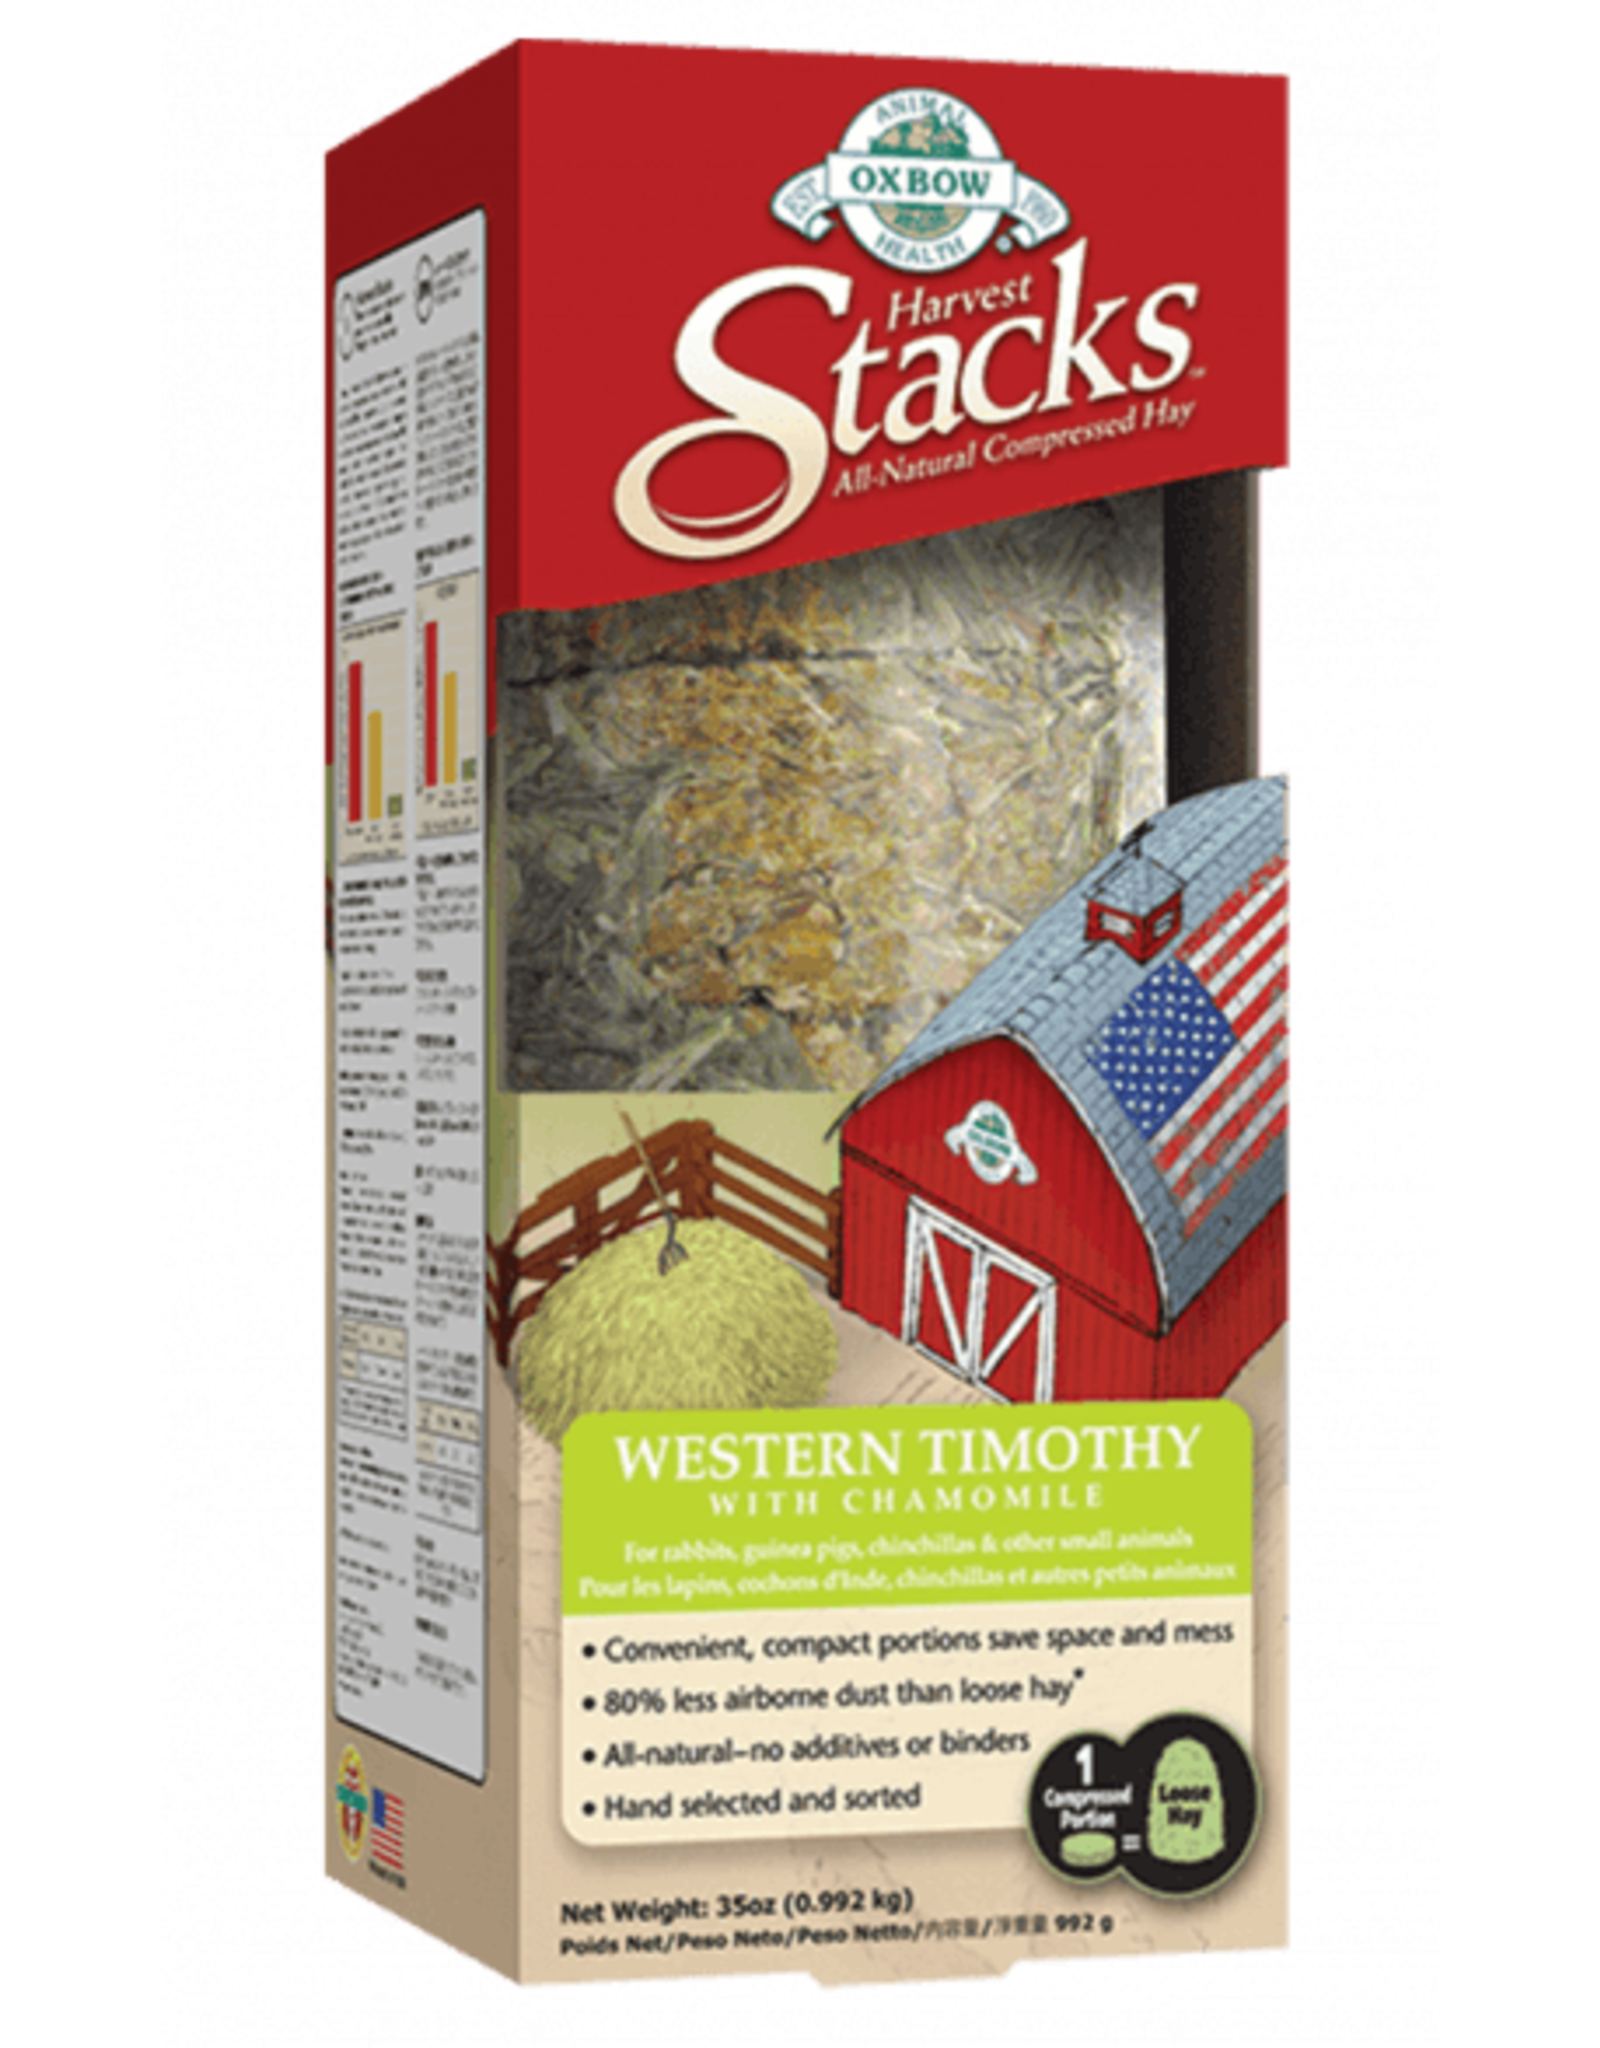 Oxbow OXBOW Harvest Stacks Timothy Hay with Chamomile 35oz